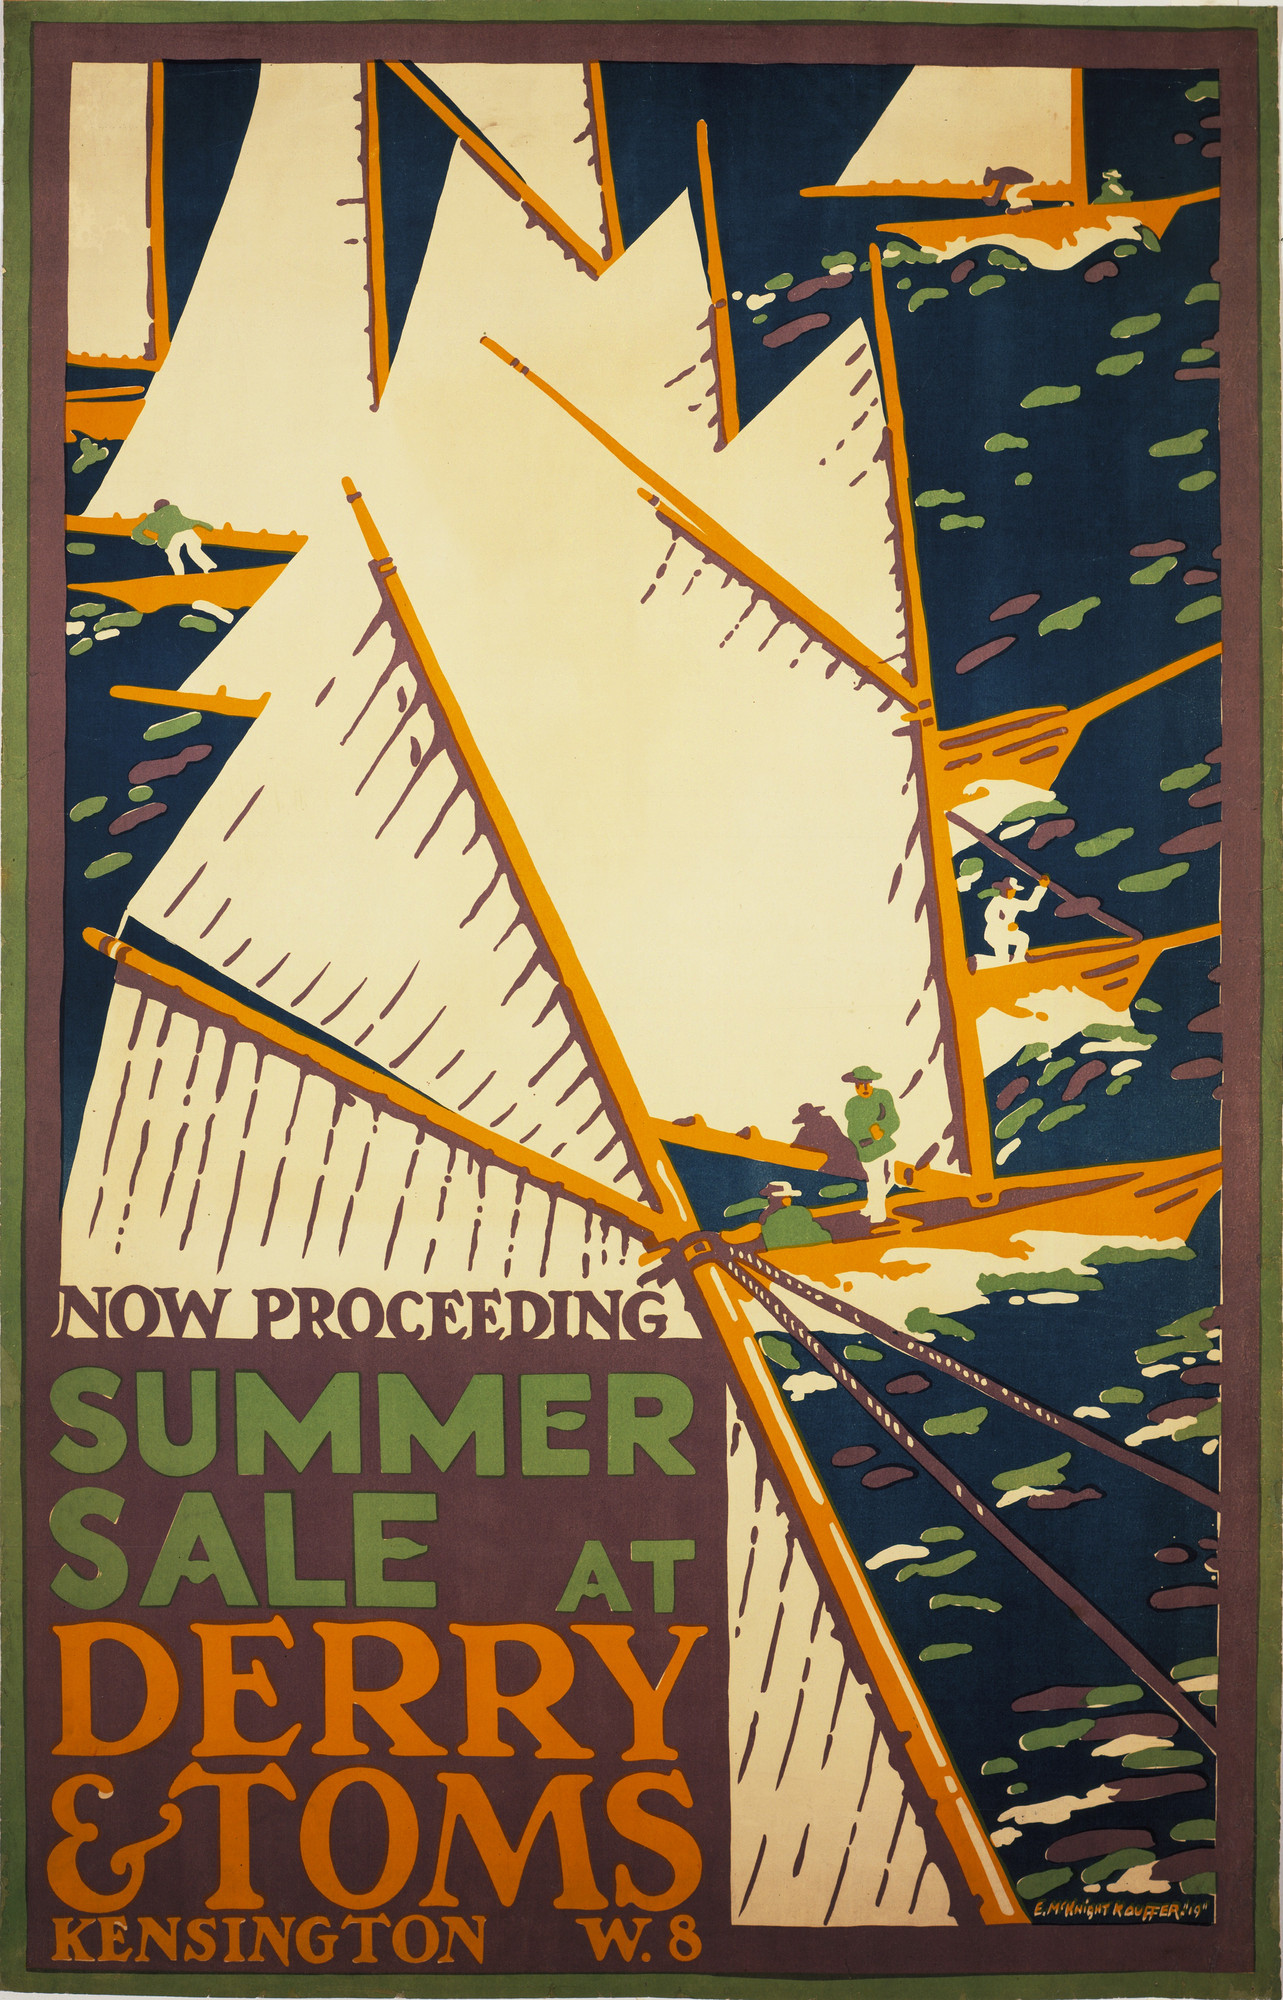 E. McKnight Kauffer. SUMMER SALE AT DERRY & TOMS. 1919